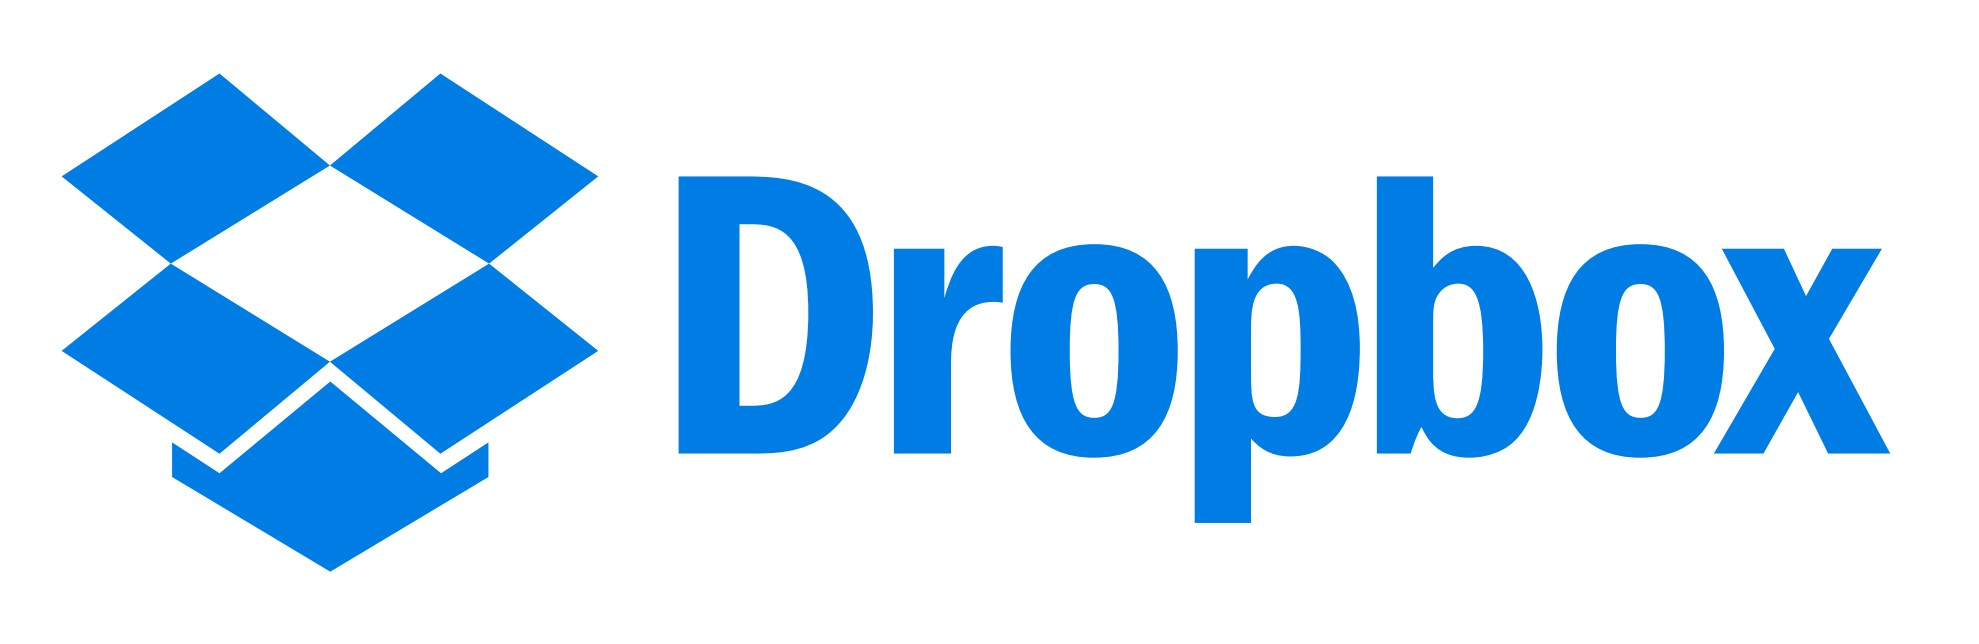 Android cloud dropbox